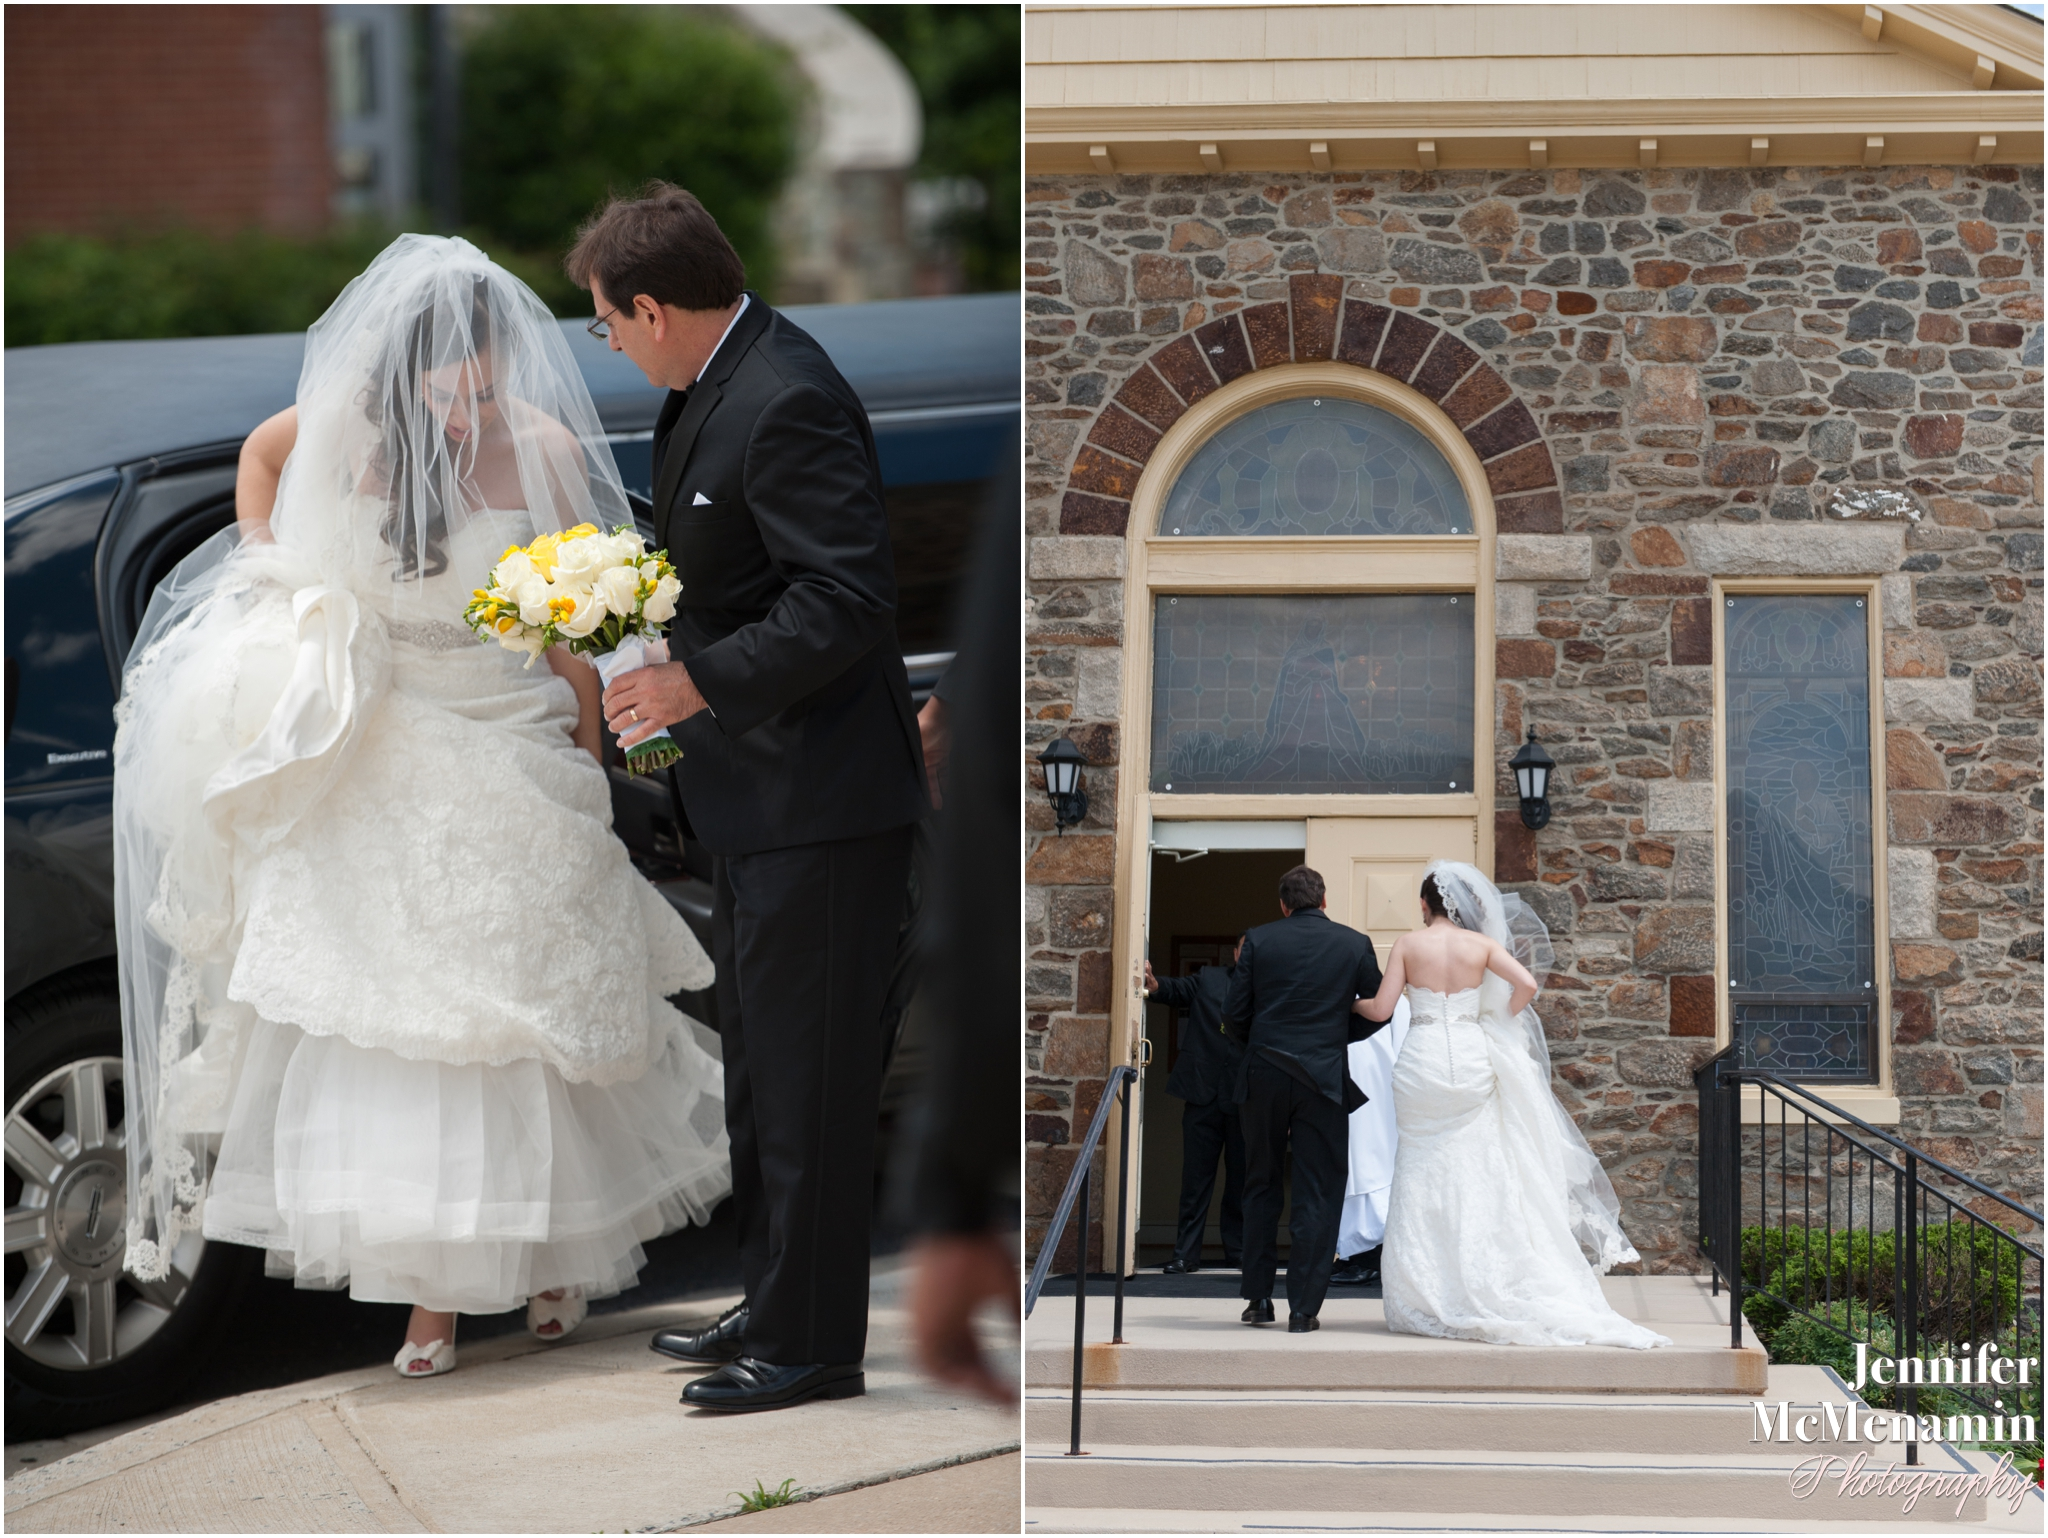 025_SchneiderMagallanes_00893-0181_JenniferMcMenaminPhotography_Baltimore-wedding-photography_St-Mary-of-the-Mills-Church_The-Other-Barn_Maryland-wedding-photography